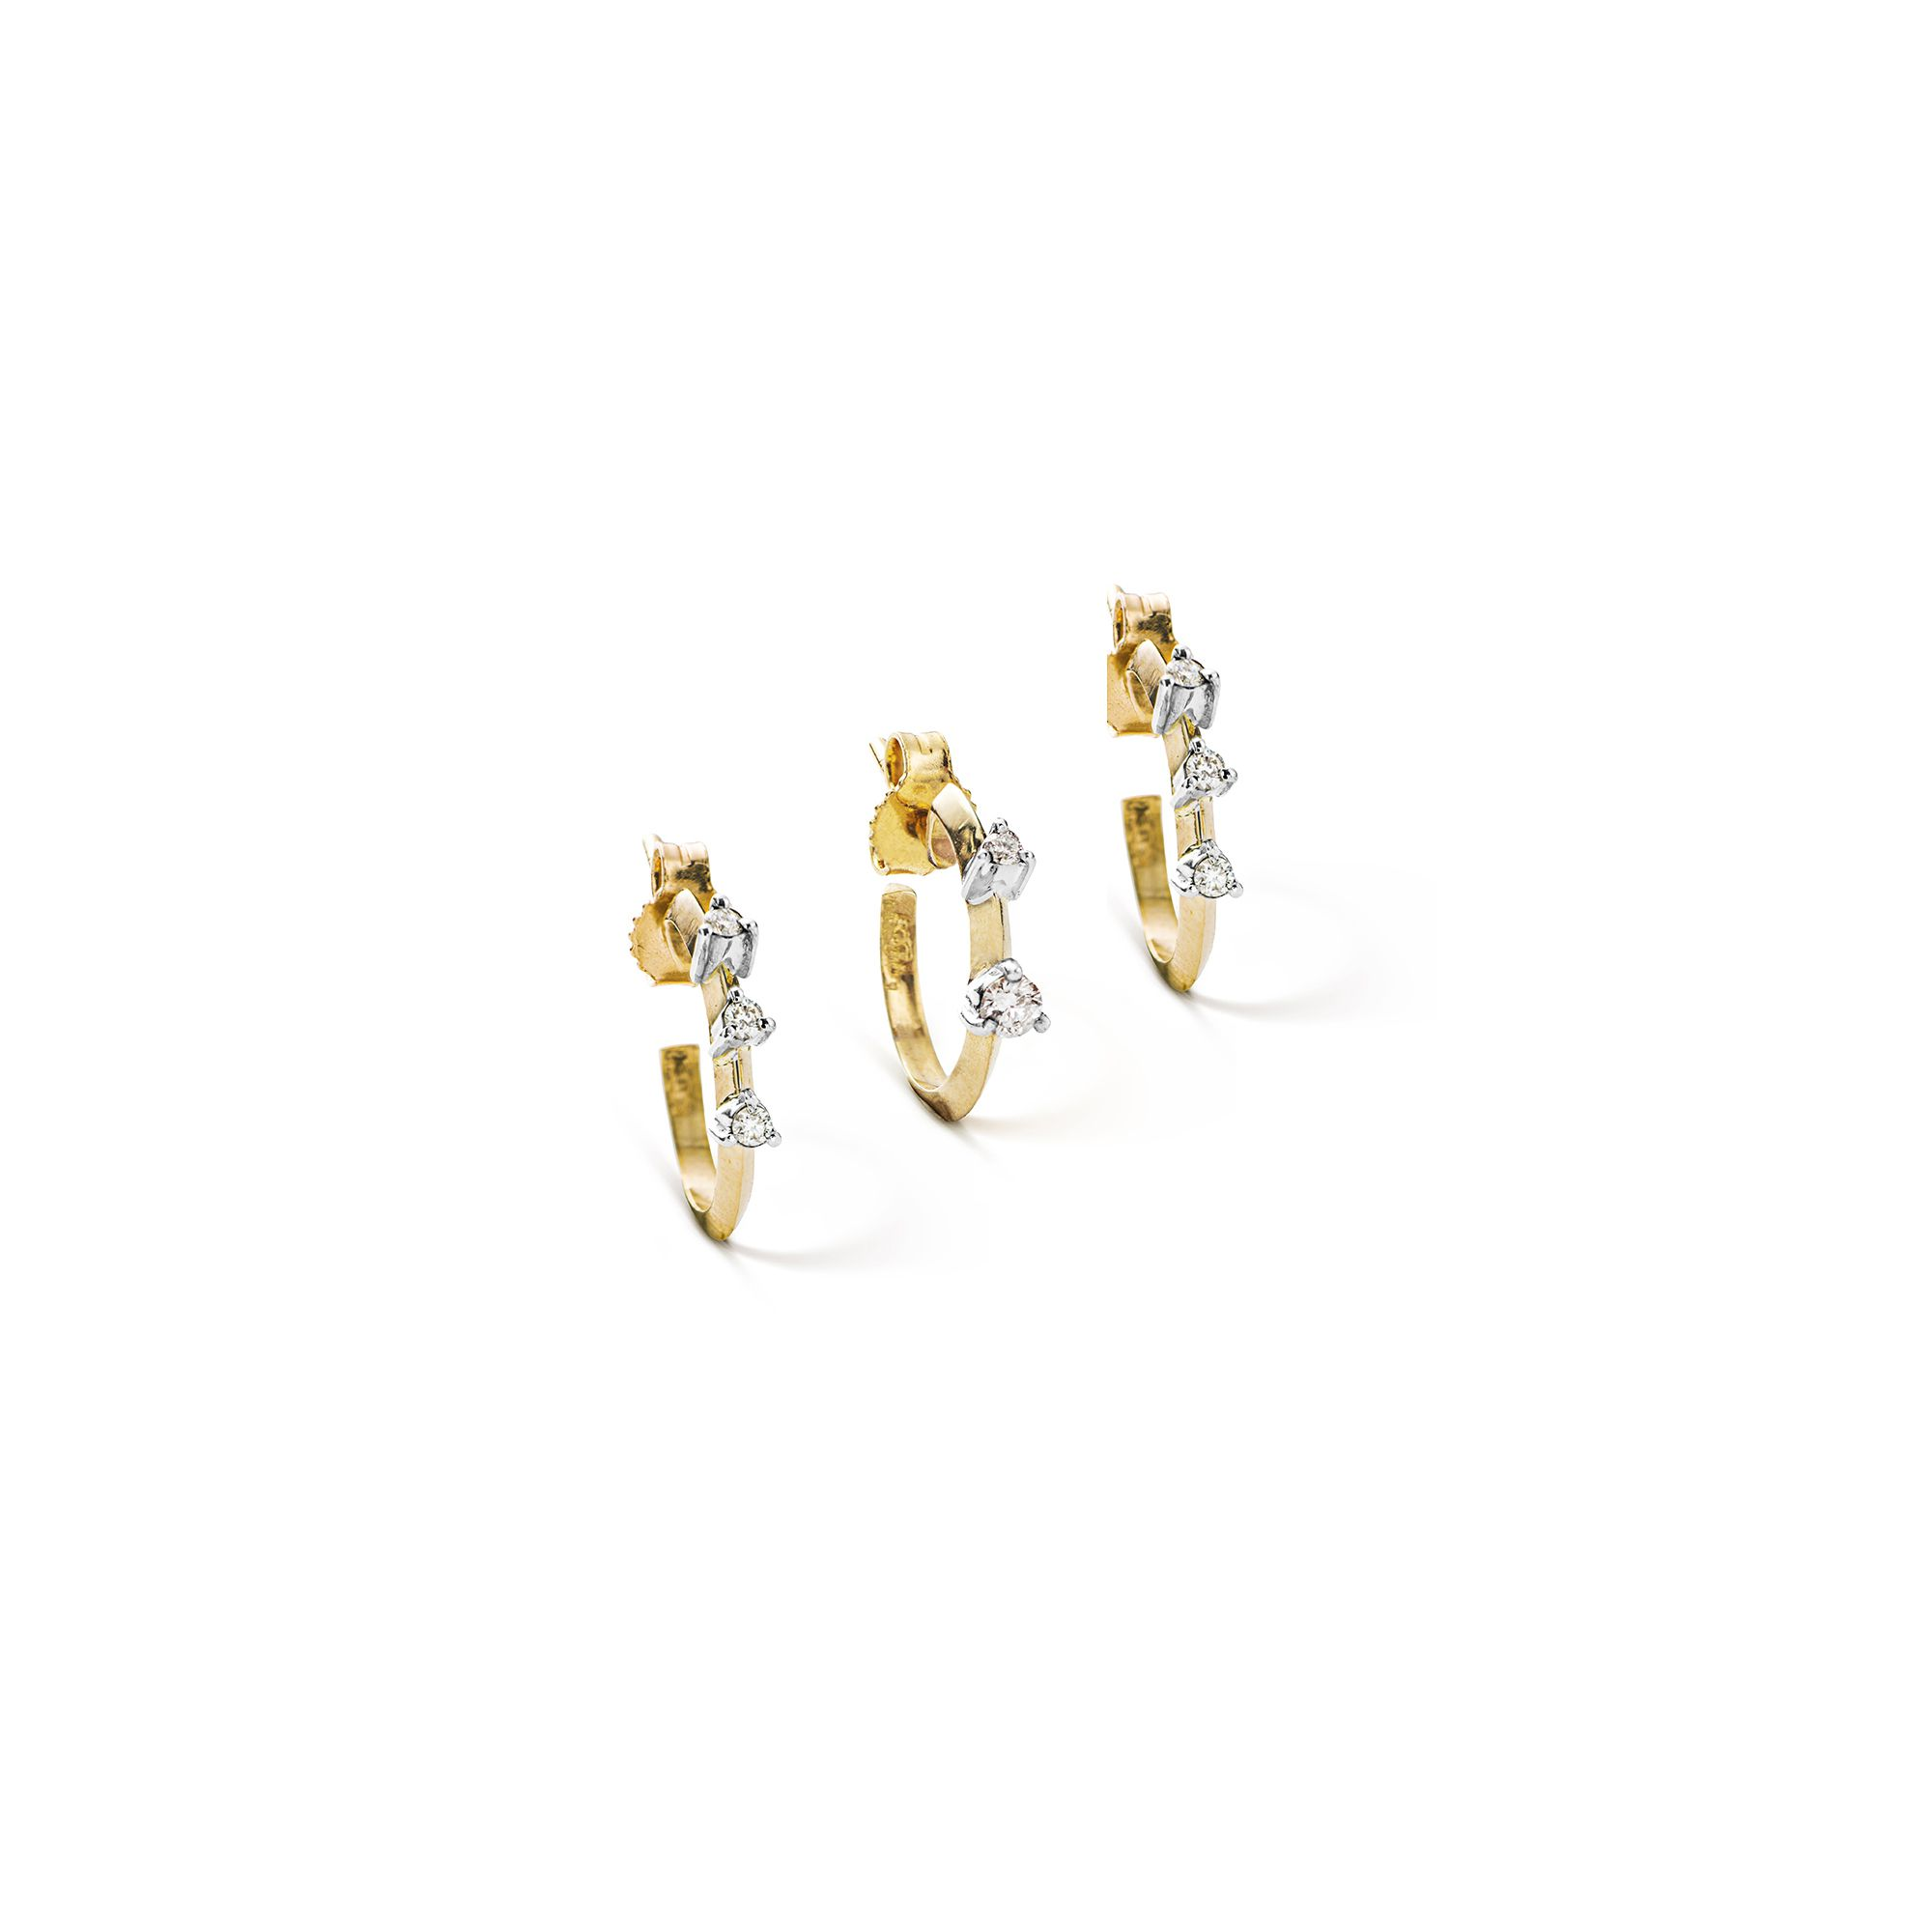 Set of three gold 'Balance' hoop earrings three small hoop earrings in yellow gold and diamonds